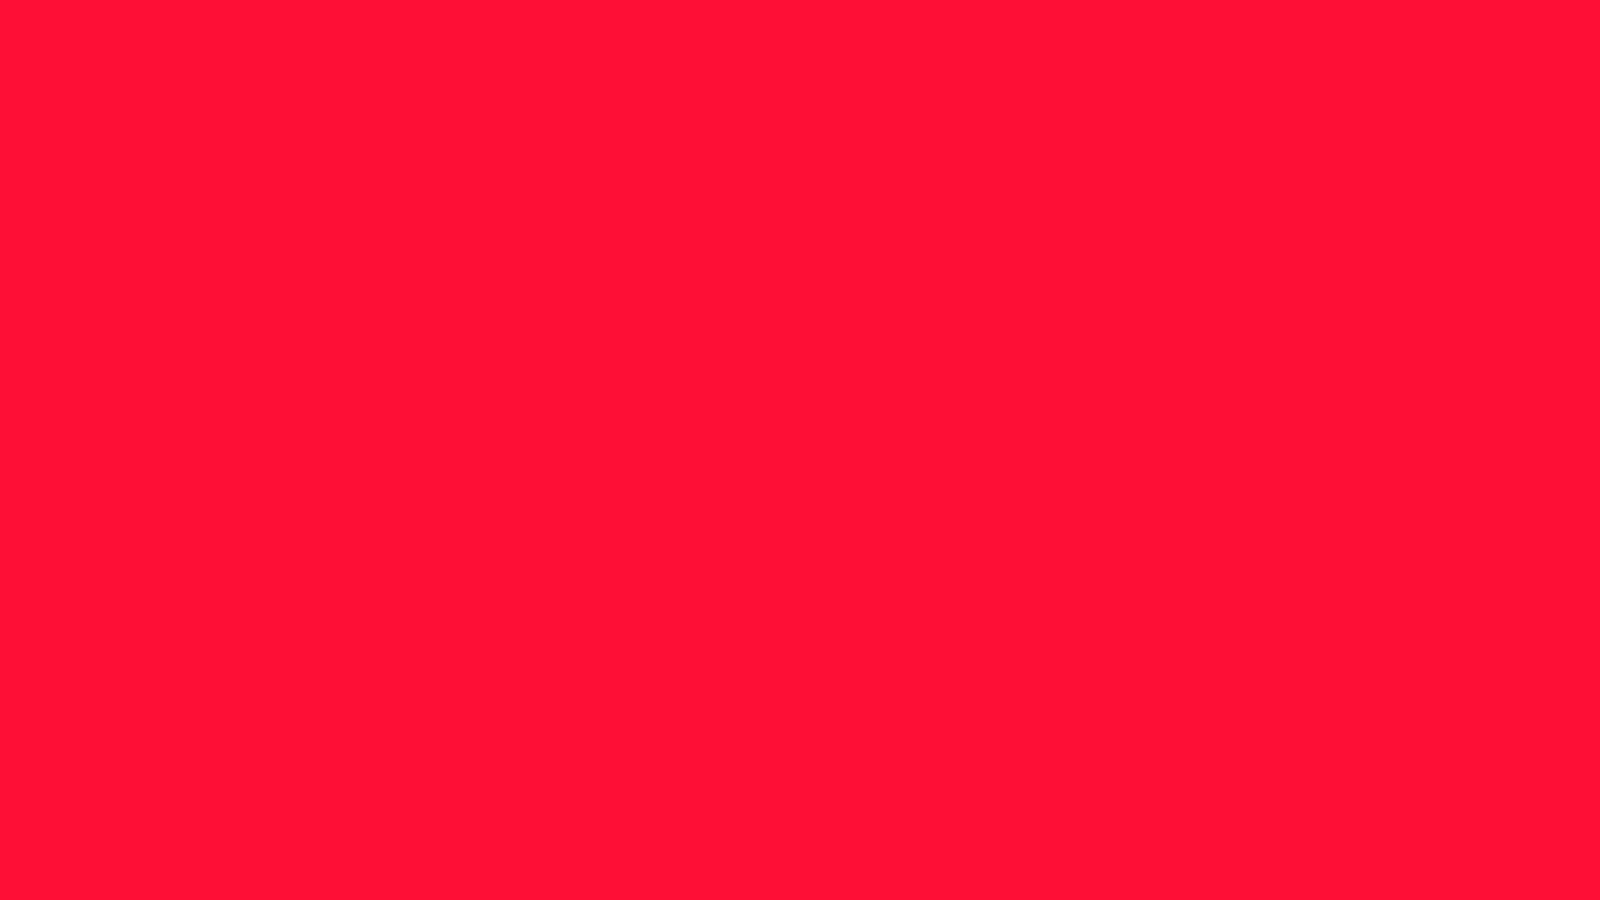 1600x900 Tractor Red Solid Color Background